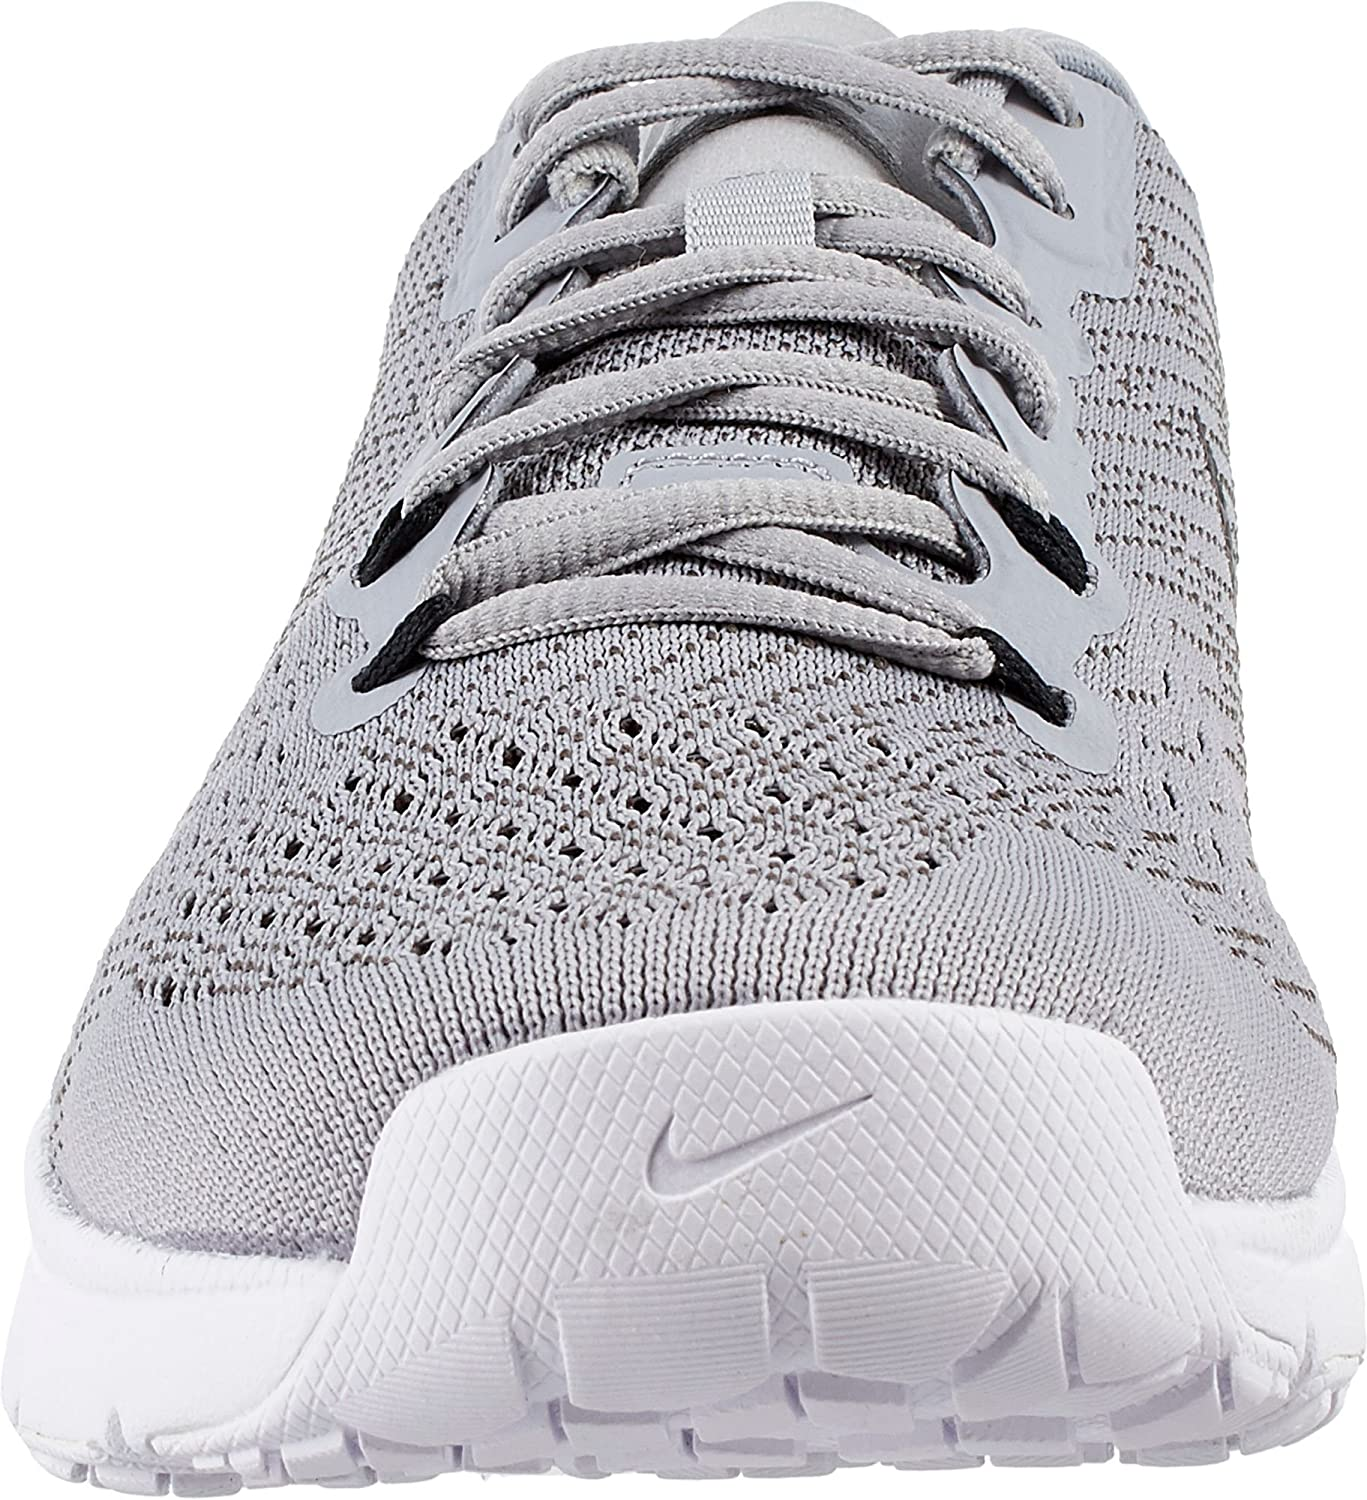 6d32aed21c4e ... Amazon.com NIKE Mens Air Max Typha Training Shoe Walking  Nike Free ...